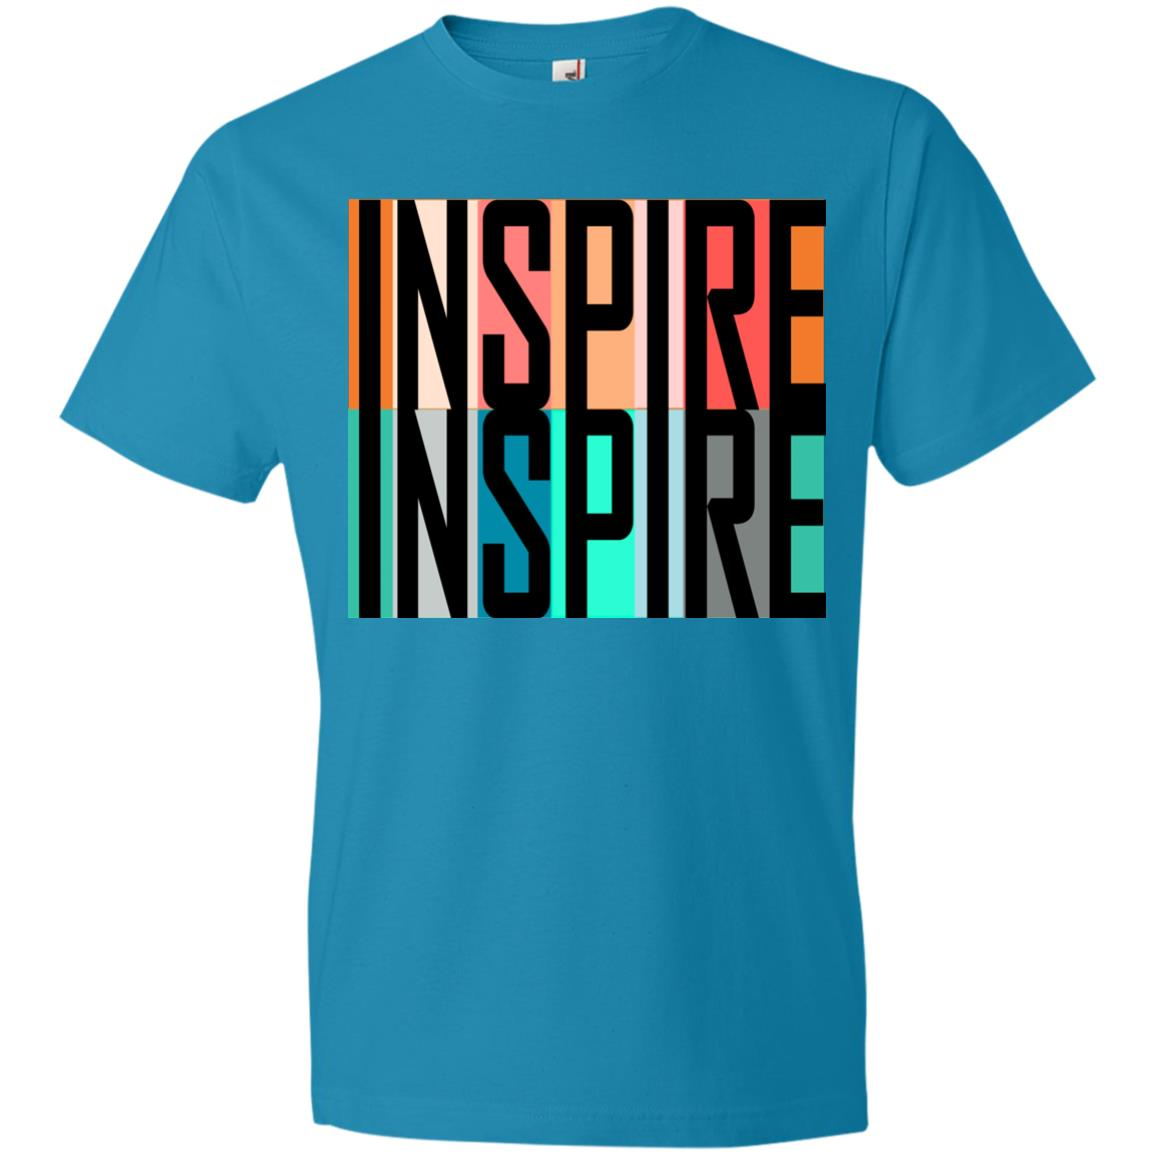 Inspire | 100% Cotton T-Shirt